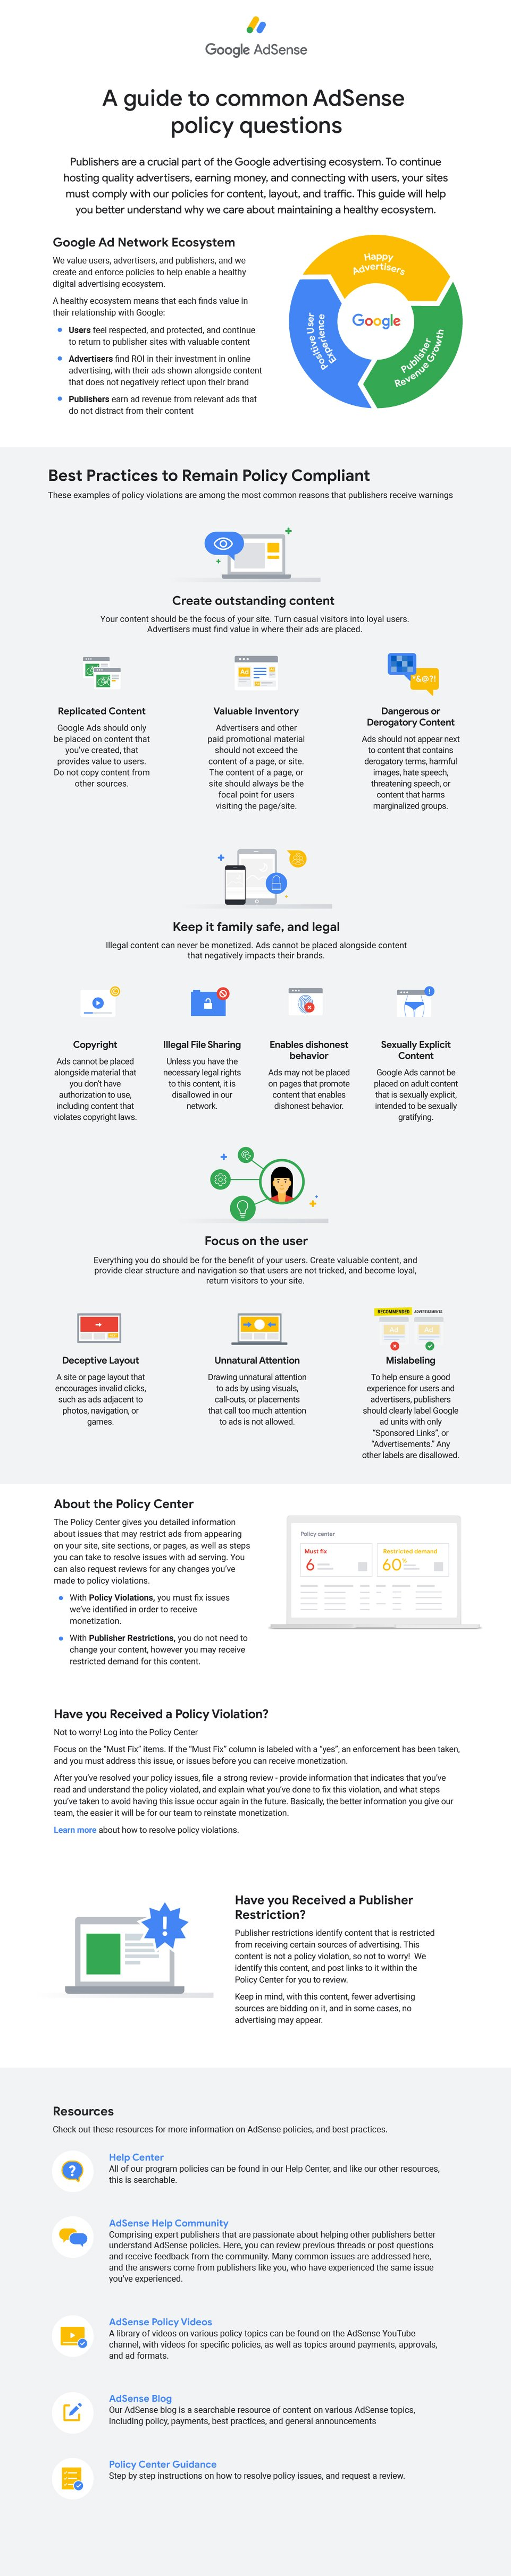 Google AdSense Questions infographic